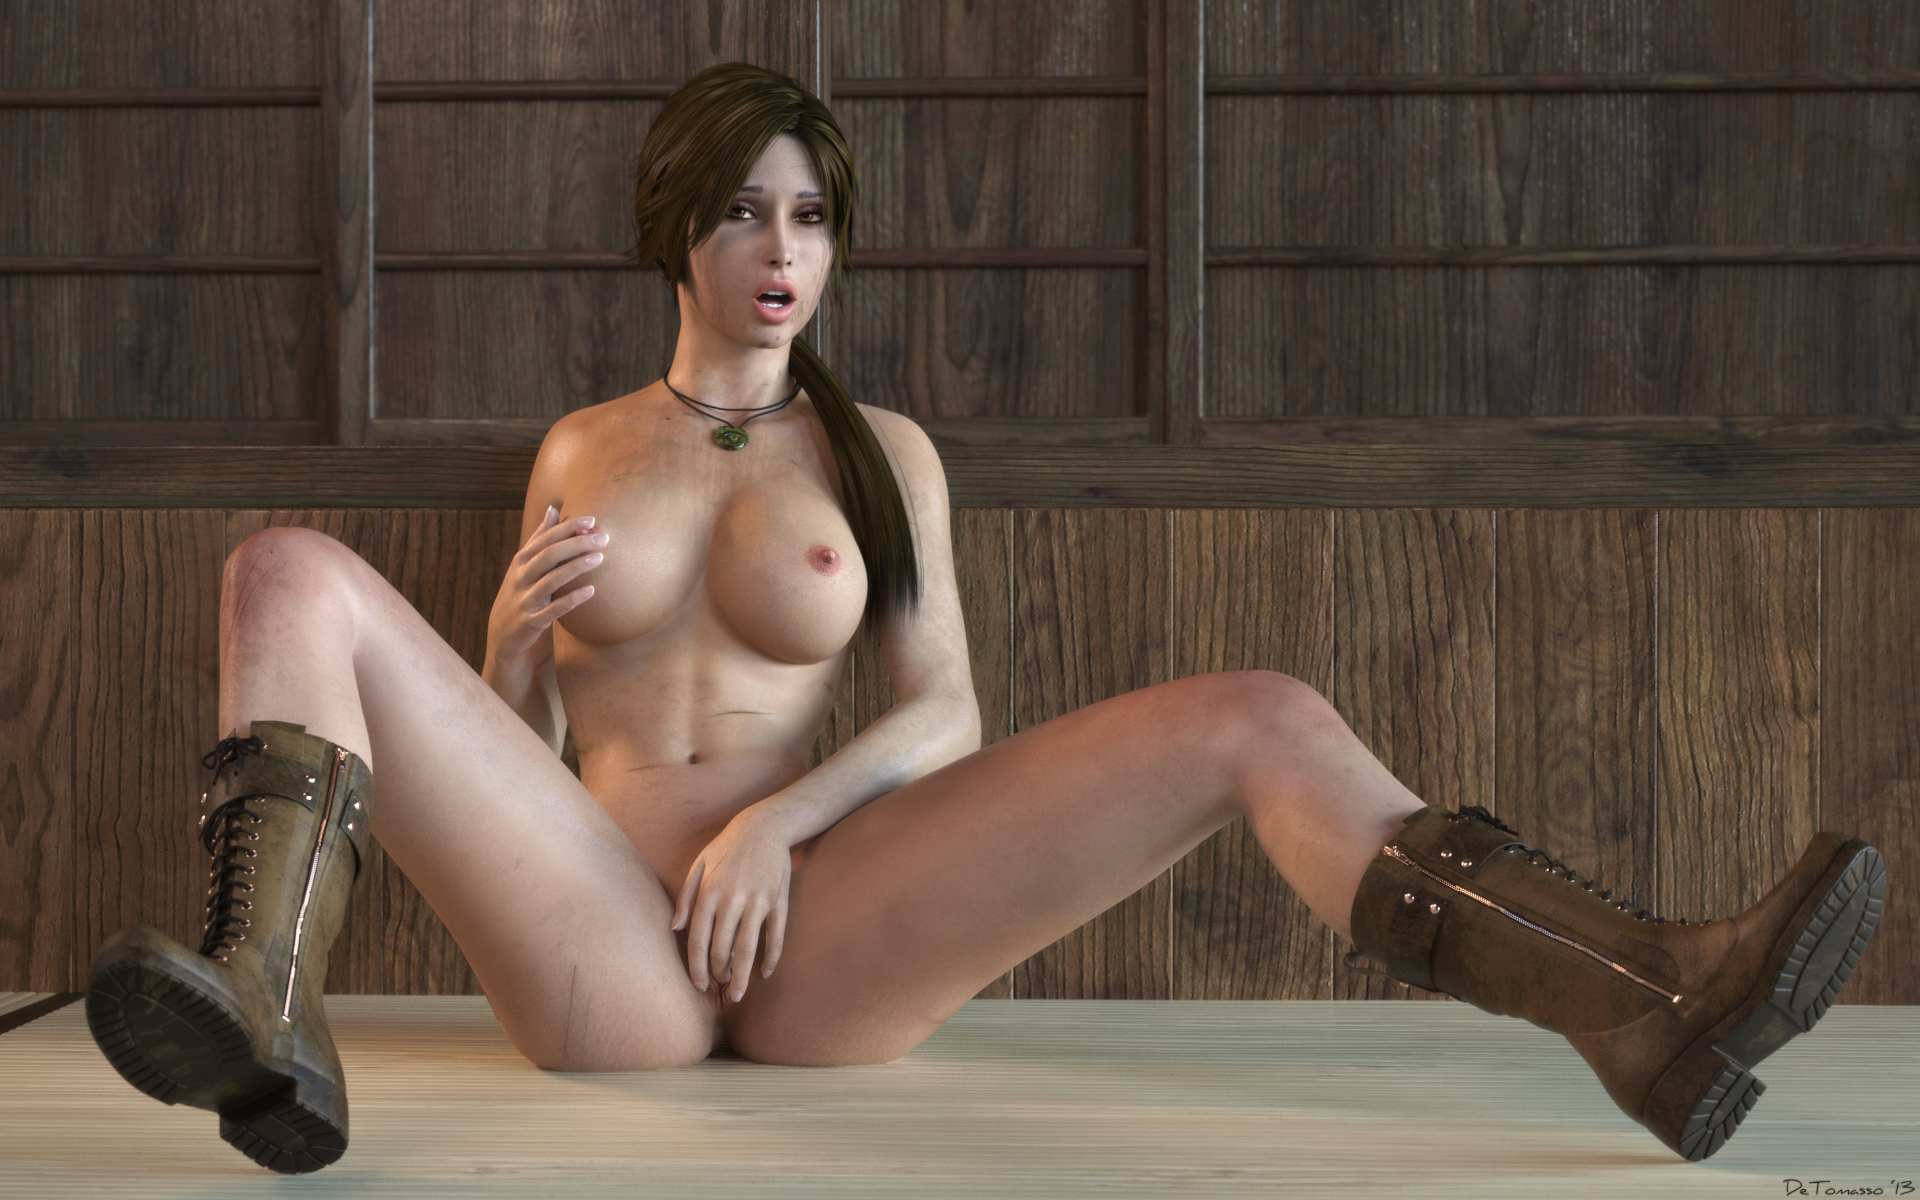 Tomb rider hentai 3d hardcore photo